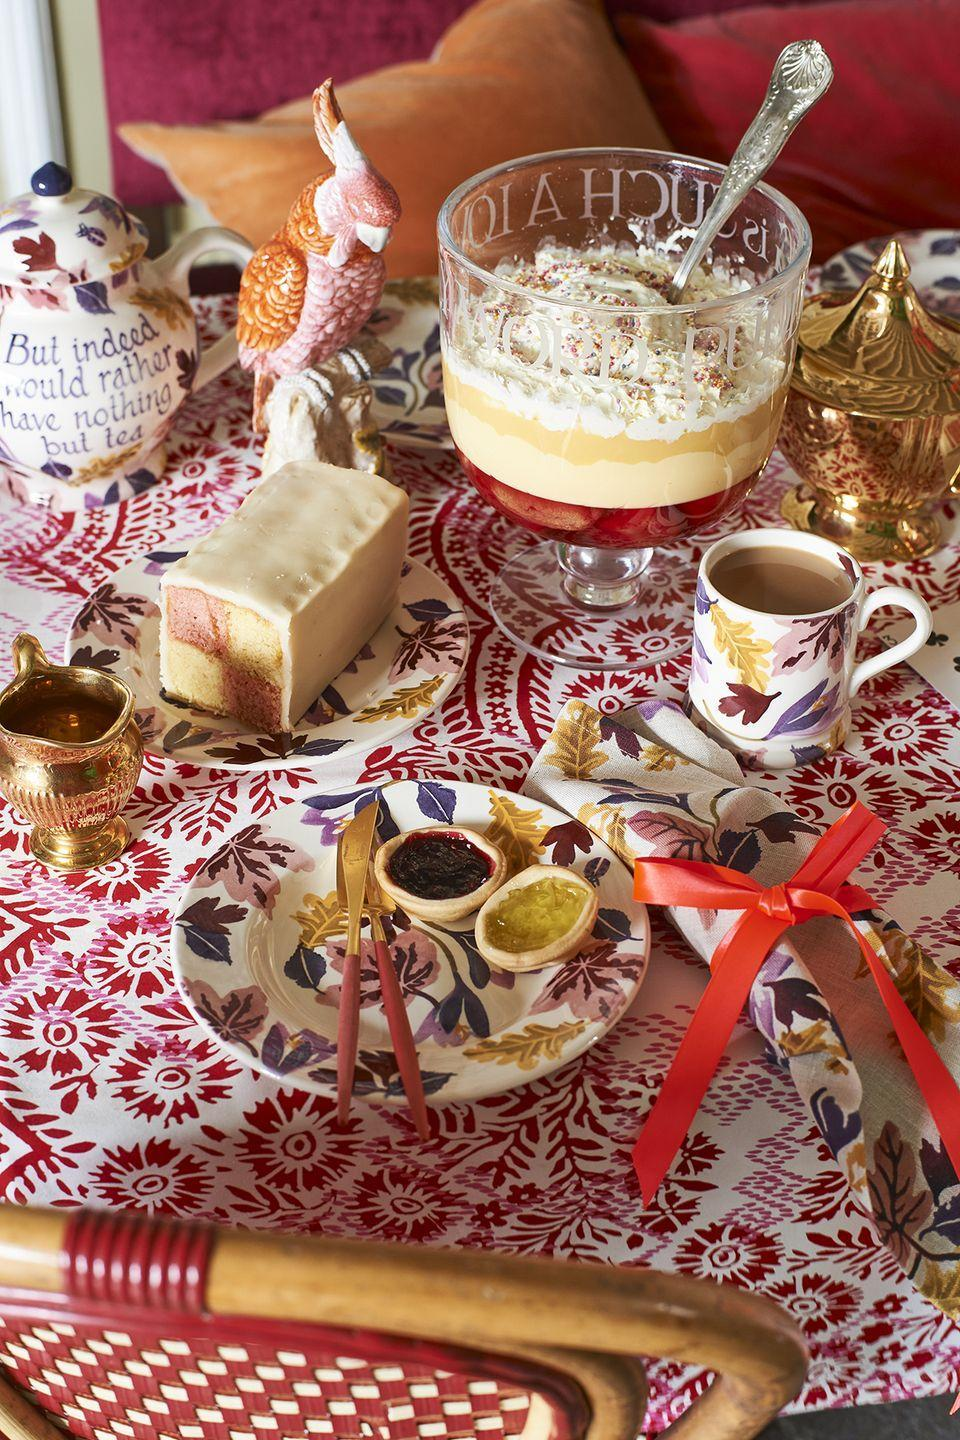 """<p>Afternoon tea just got an autumnal refresh with this beautiful new seasonal range.</p><p>'Introducing the new autumn Crocus collection, embracing shades of purple and pink for the new season,' the team at Emma Bridgewater say. 'The sponge-ware collection includes mugs, plates, bowls, jugs and even a gallon sized-teapot.'</p><p><a class=""""link rapid-noclick-resp"""" href=""""https://go.redirectingat.com?id=127X1599956&url=https%3A%2F%2Fwww.emmabridgewater.co.uk%2Fsearch%3Fview%3Dspring%26q%3DAutumn%2B%25EF%25BB%25BFCrocus&sref=https%3A%2F%2Fwww.housebeautiful.com%2Fuk%2Flifestyle%2Fshopping%2Fg37527696%2Femma-bridgewater-autumn-range%2F"""" rel=""""nofollow noopener"""" target=""""_blank"""" data-ylk=""""slk:SHOP THE RANGE"""">SHOP THE RANGE</a></p>"""